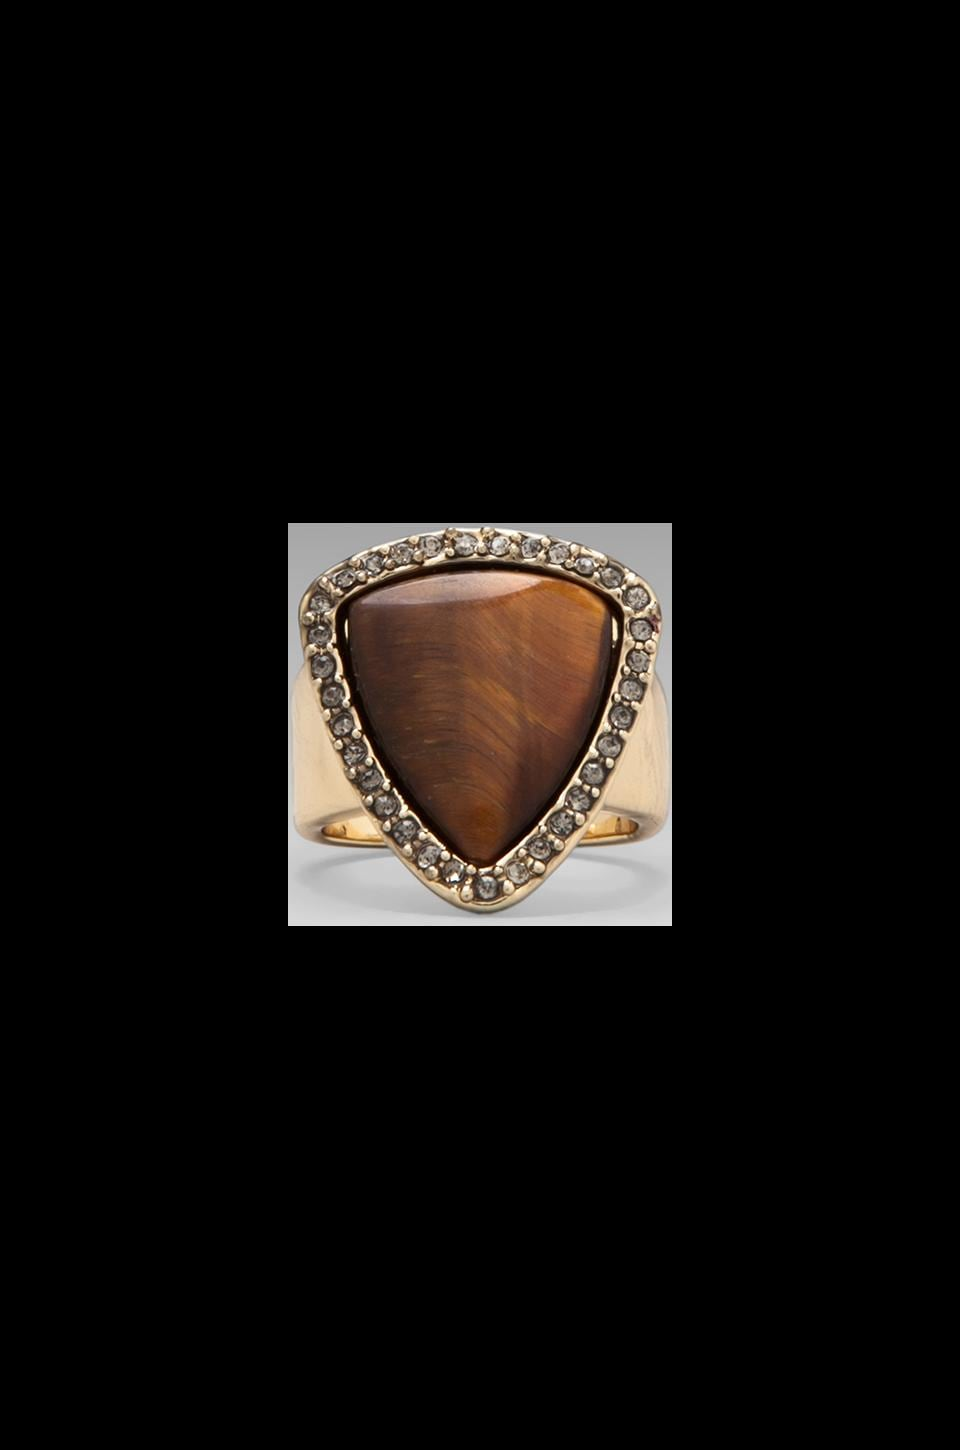 House of Harlow Band Ring in Gold/Tiger's Eye